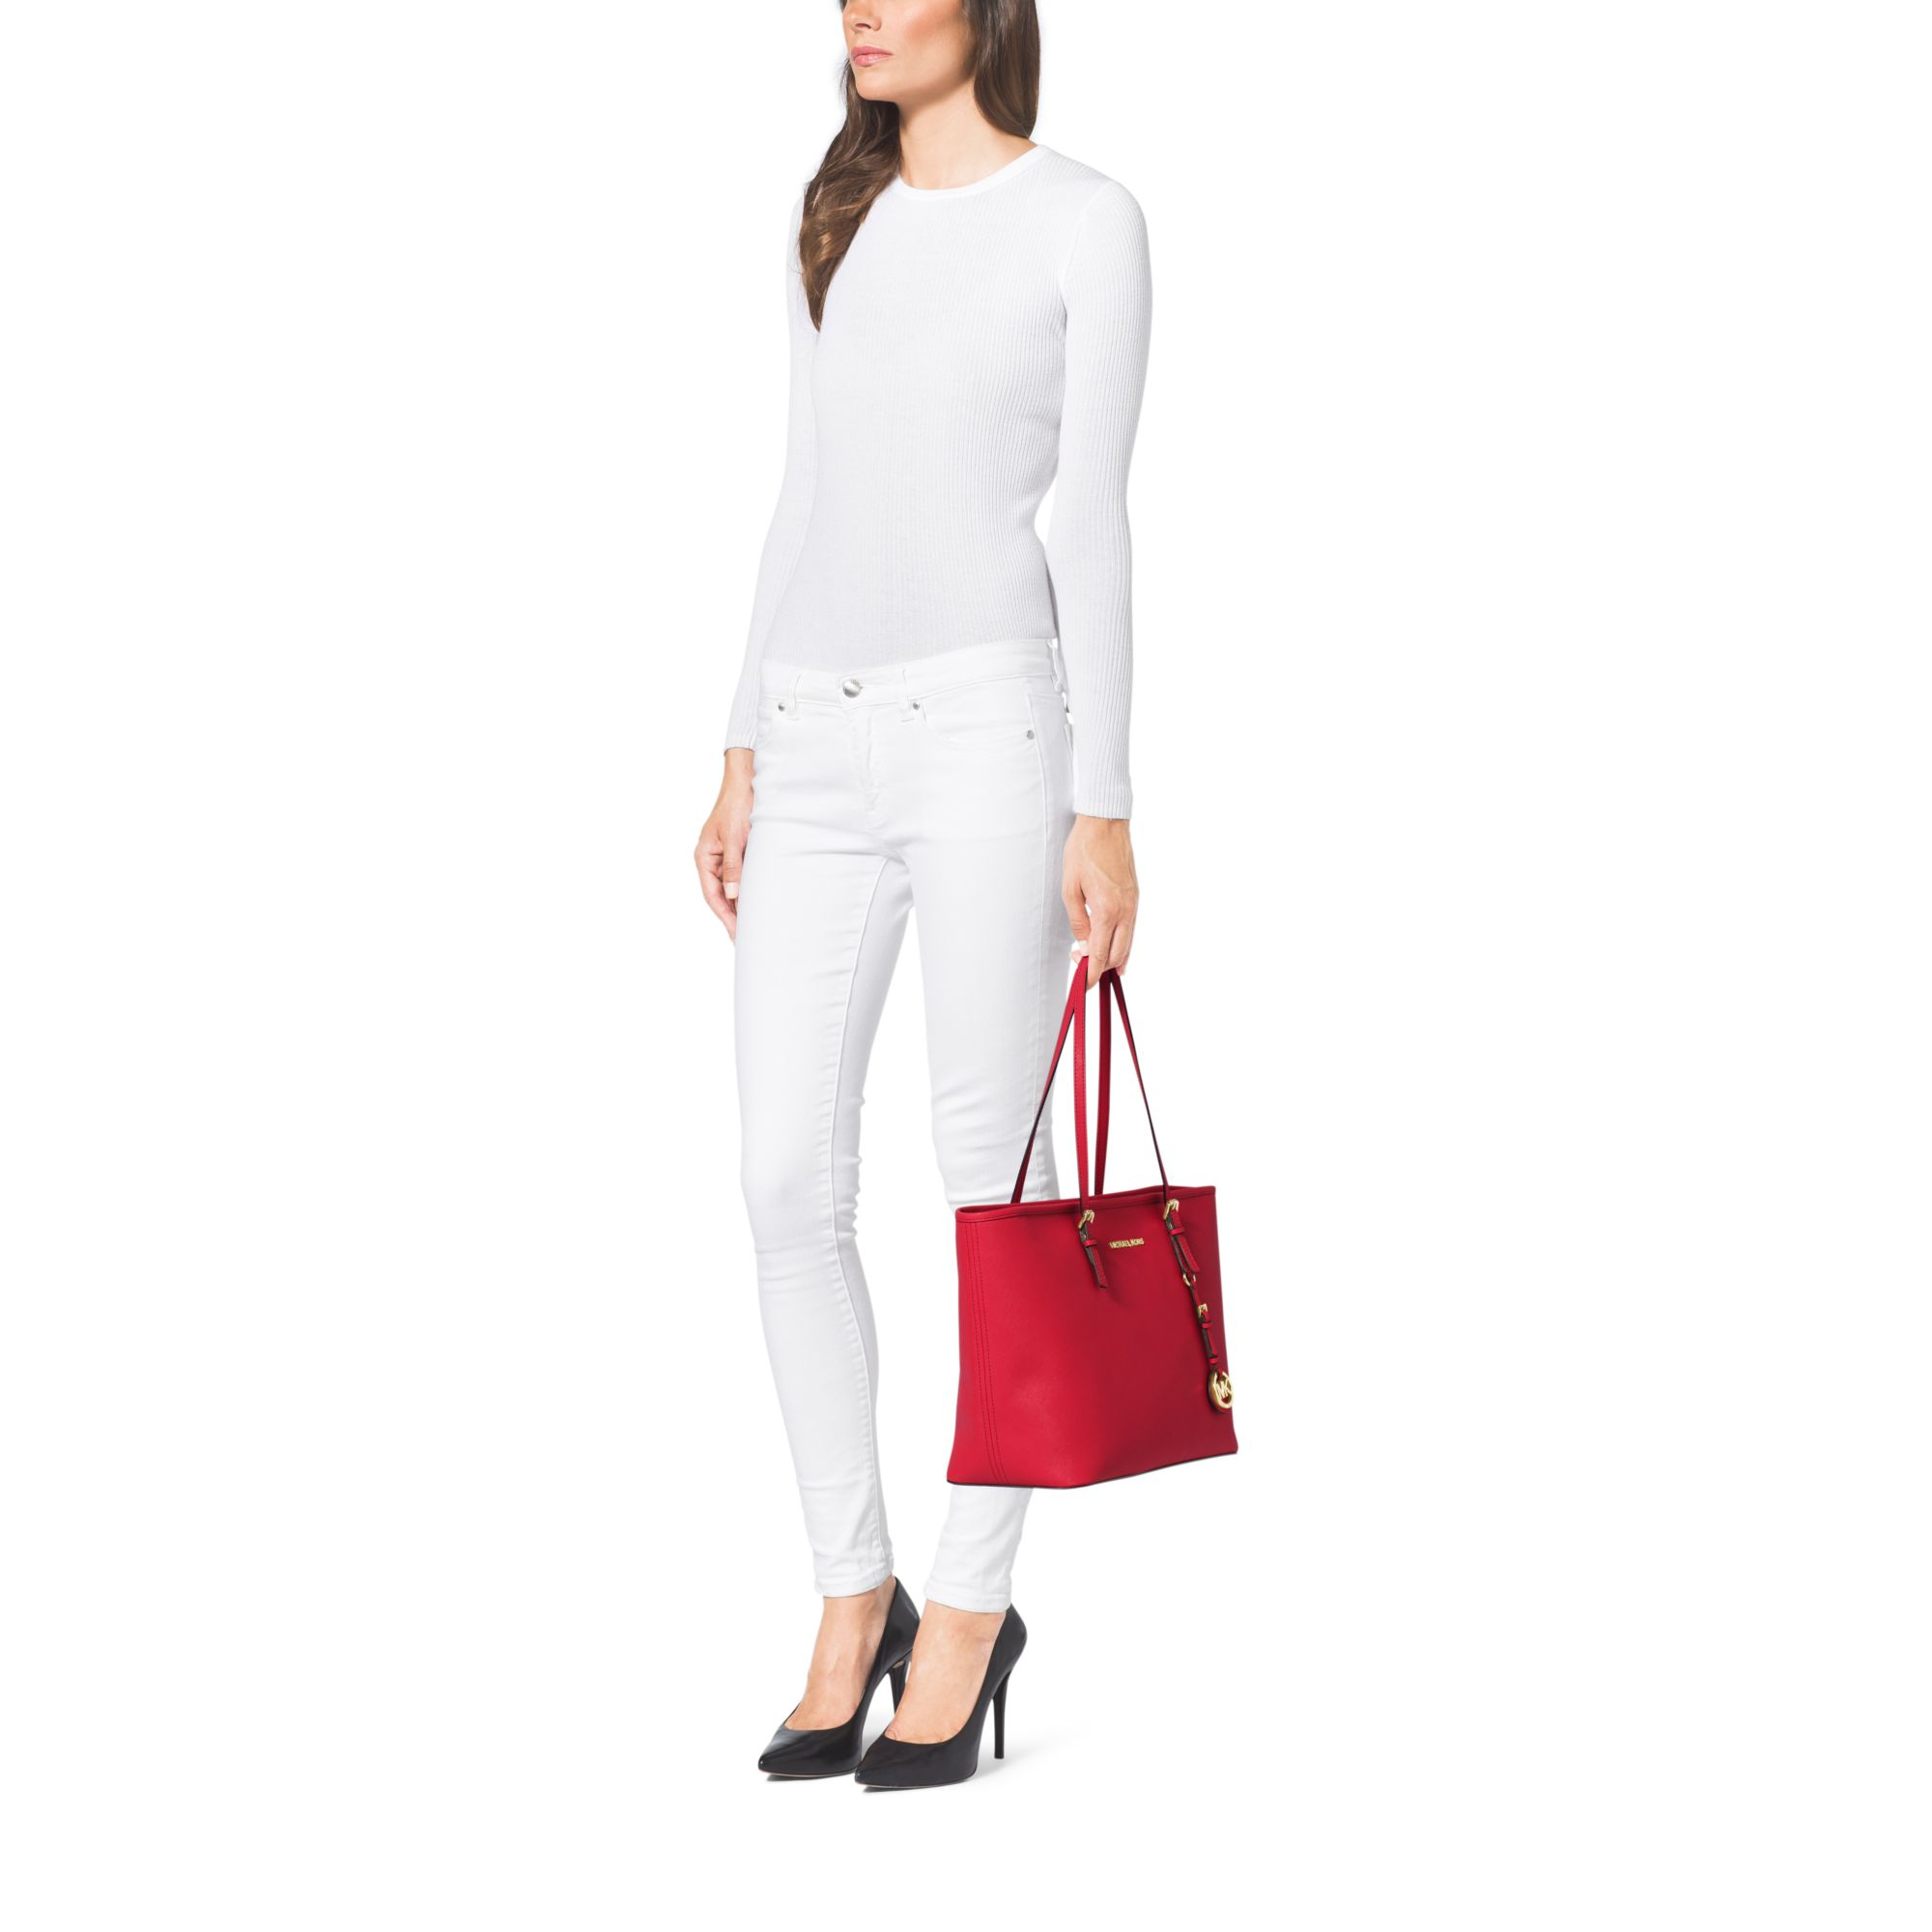 4c3f40f3c982 Lyst - Michael Kors Jet Set Travel Saffiano Leather Top-zip Tote in Red